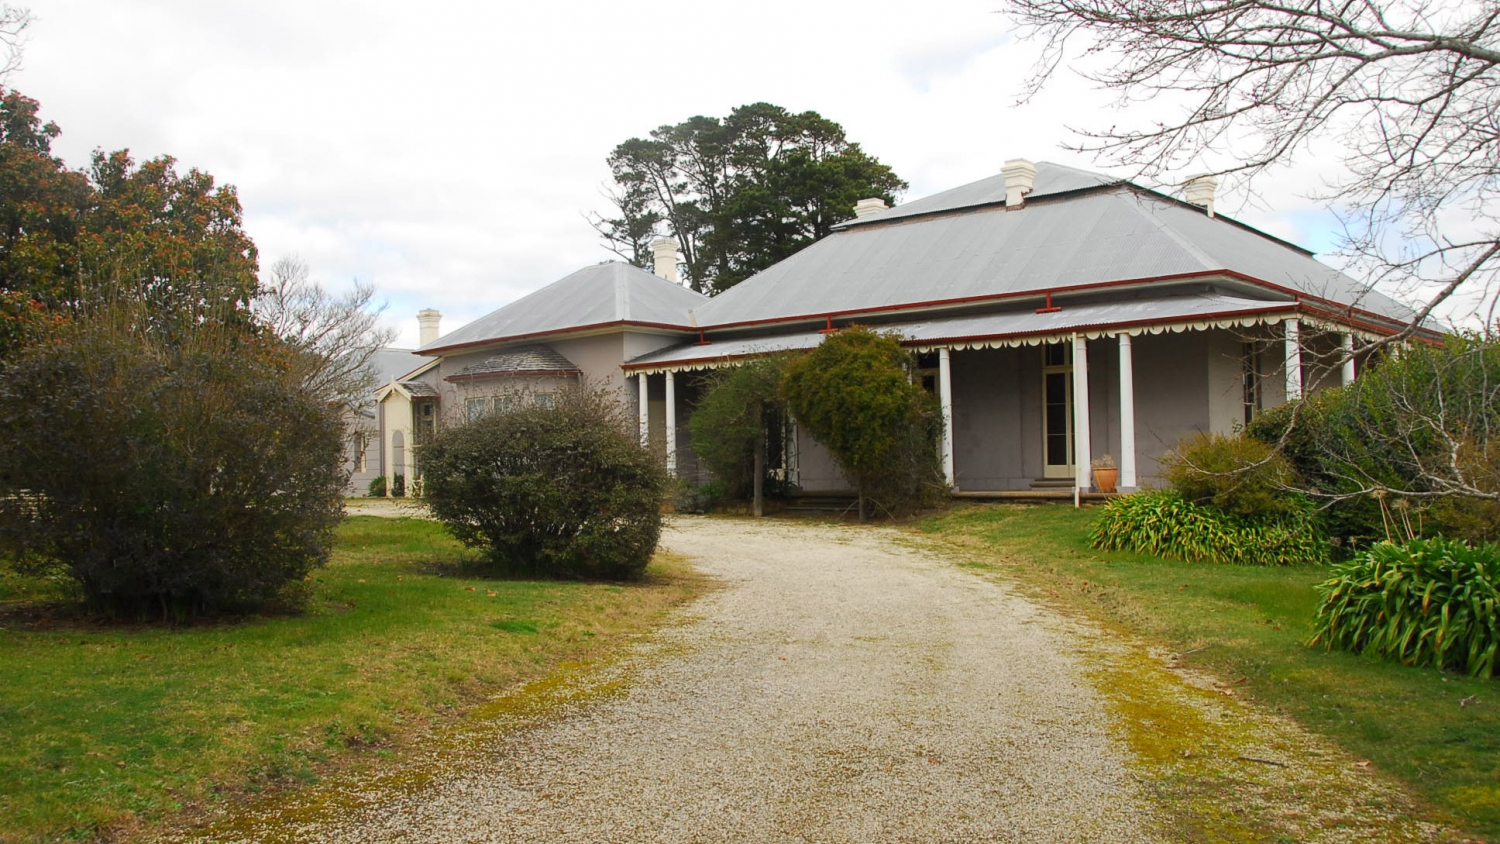 View along a gravel driveway looking towards a mauve painted bungalow house with large roof of corrugated metal and verandah with decorative timberwork under the outer gutters. There are busges and trees in the foreground and lush green grass on the lawn.